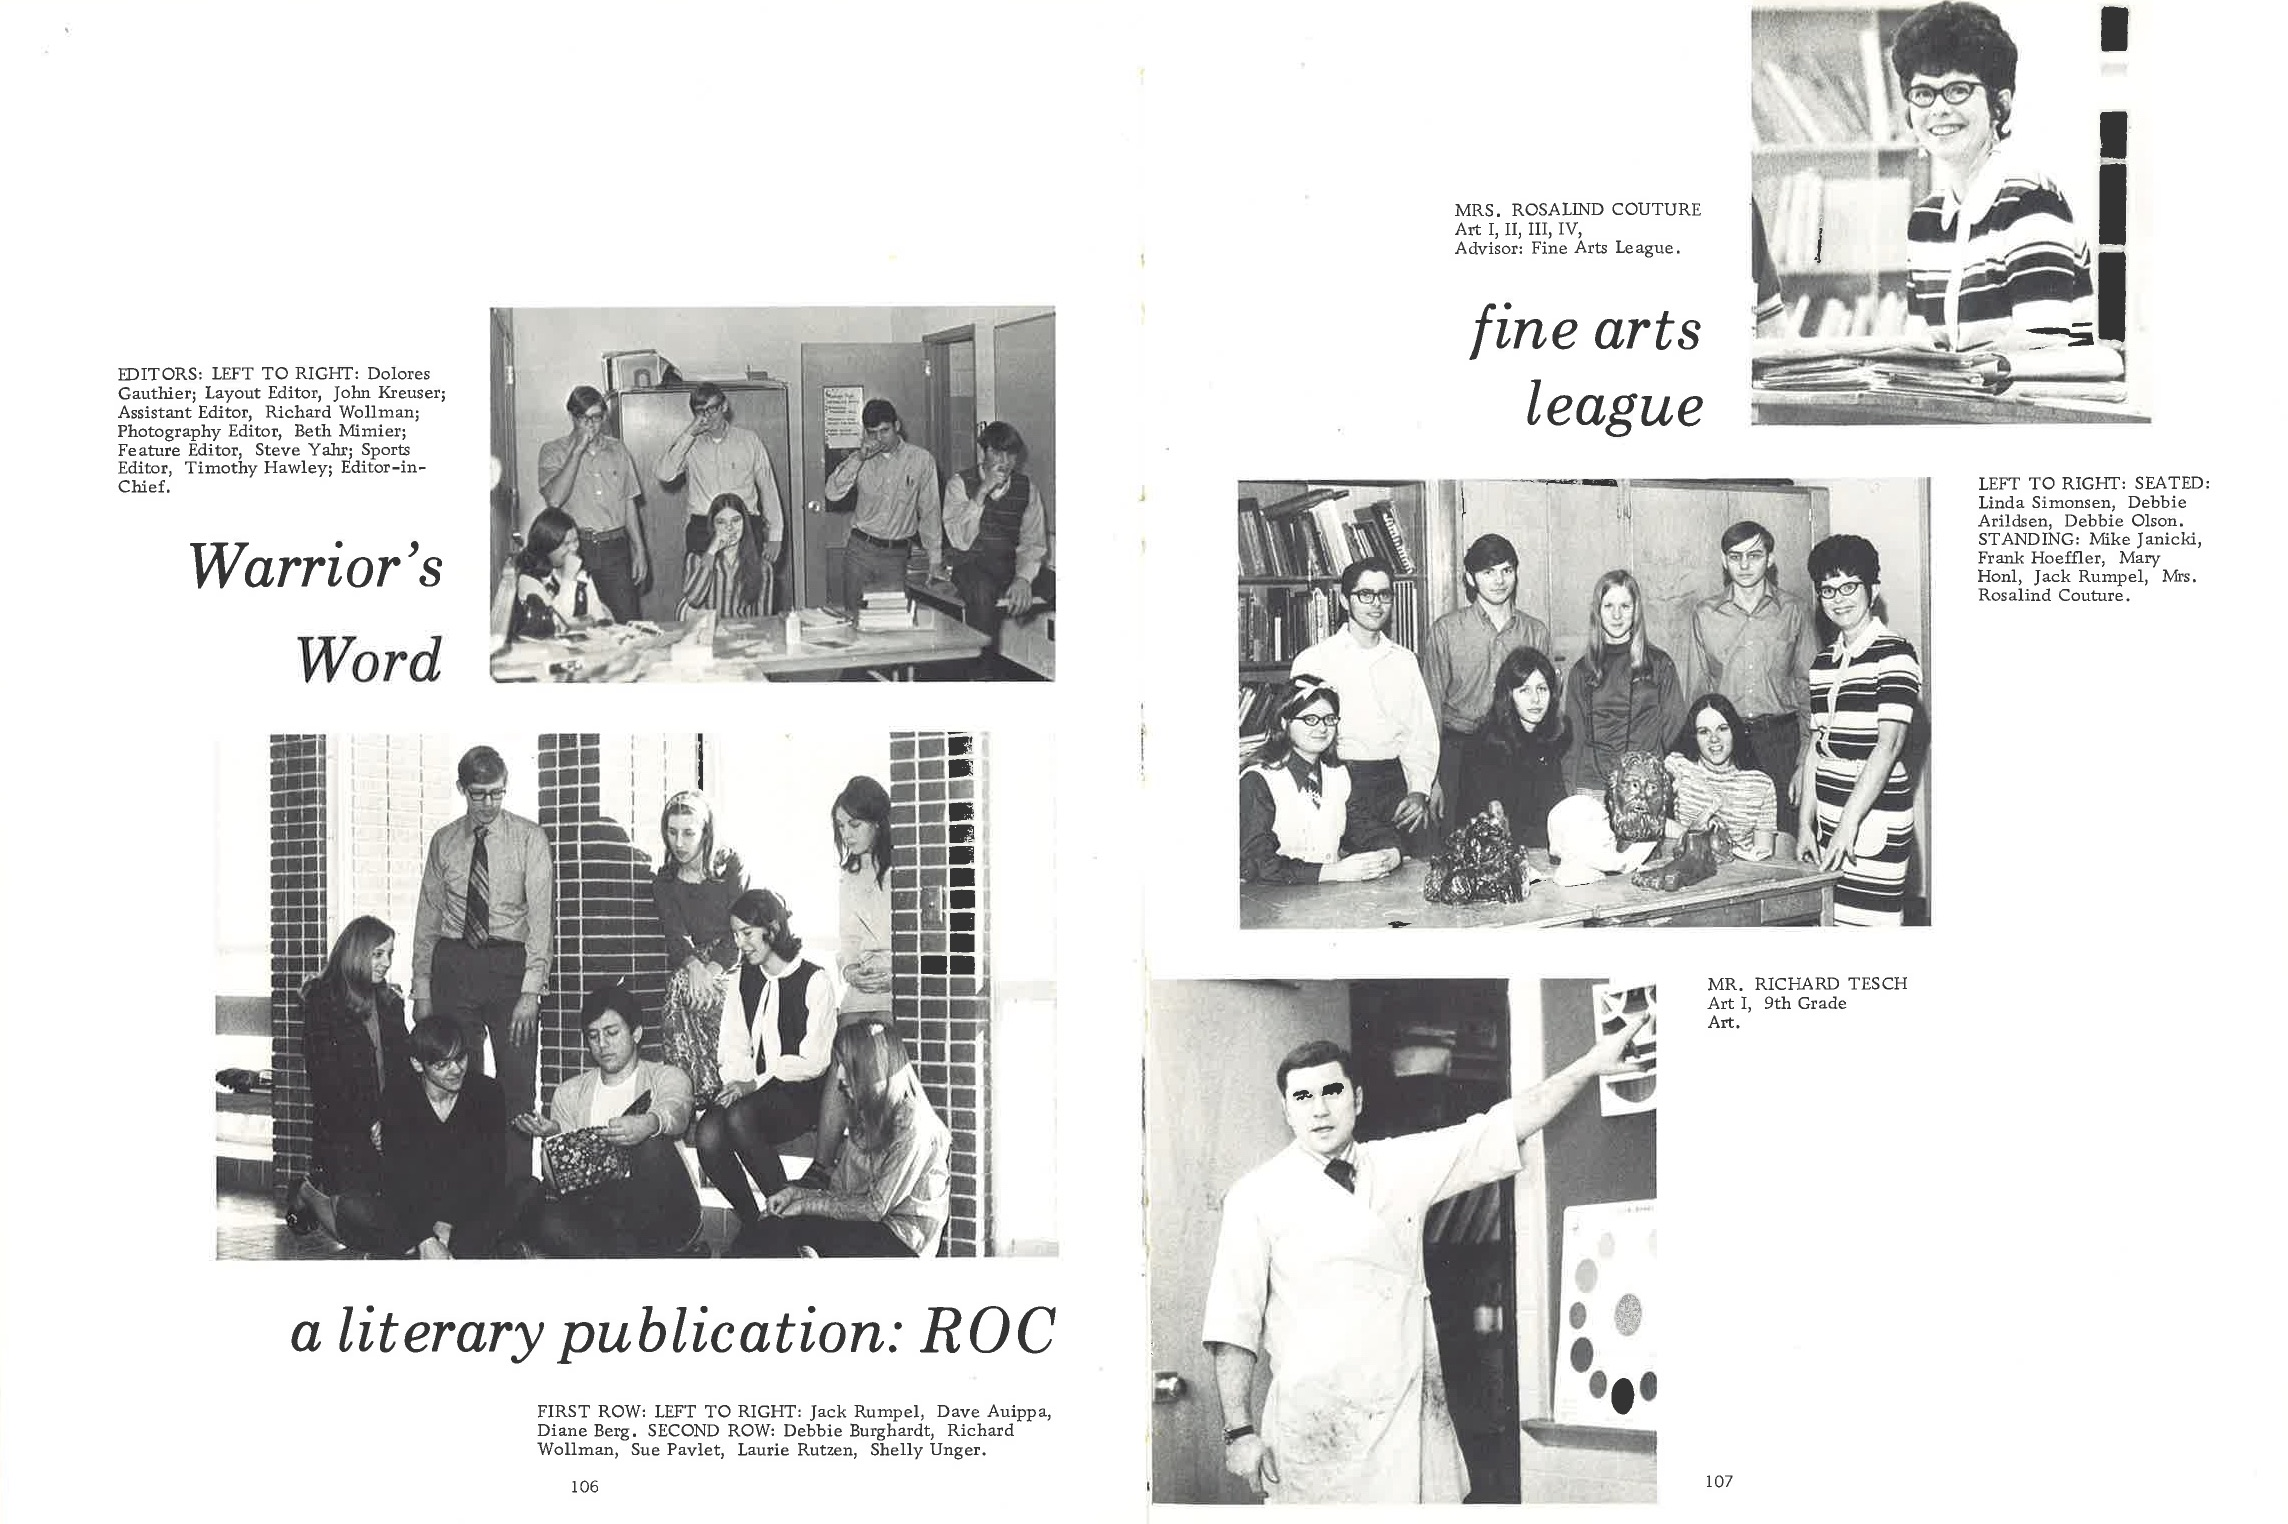 1971_Yearbook_106-107.jpg